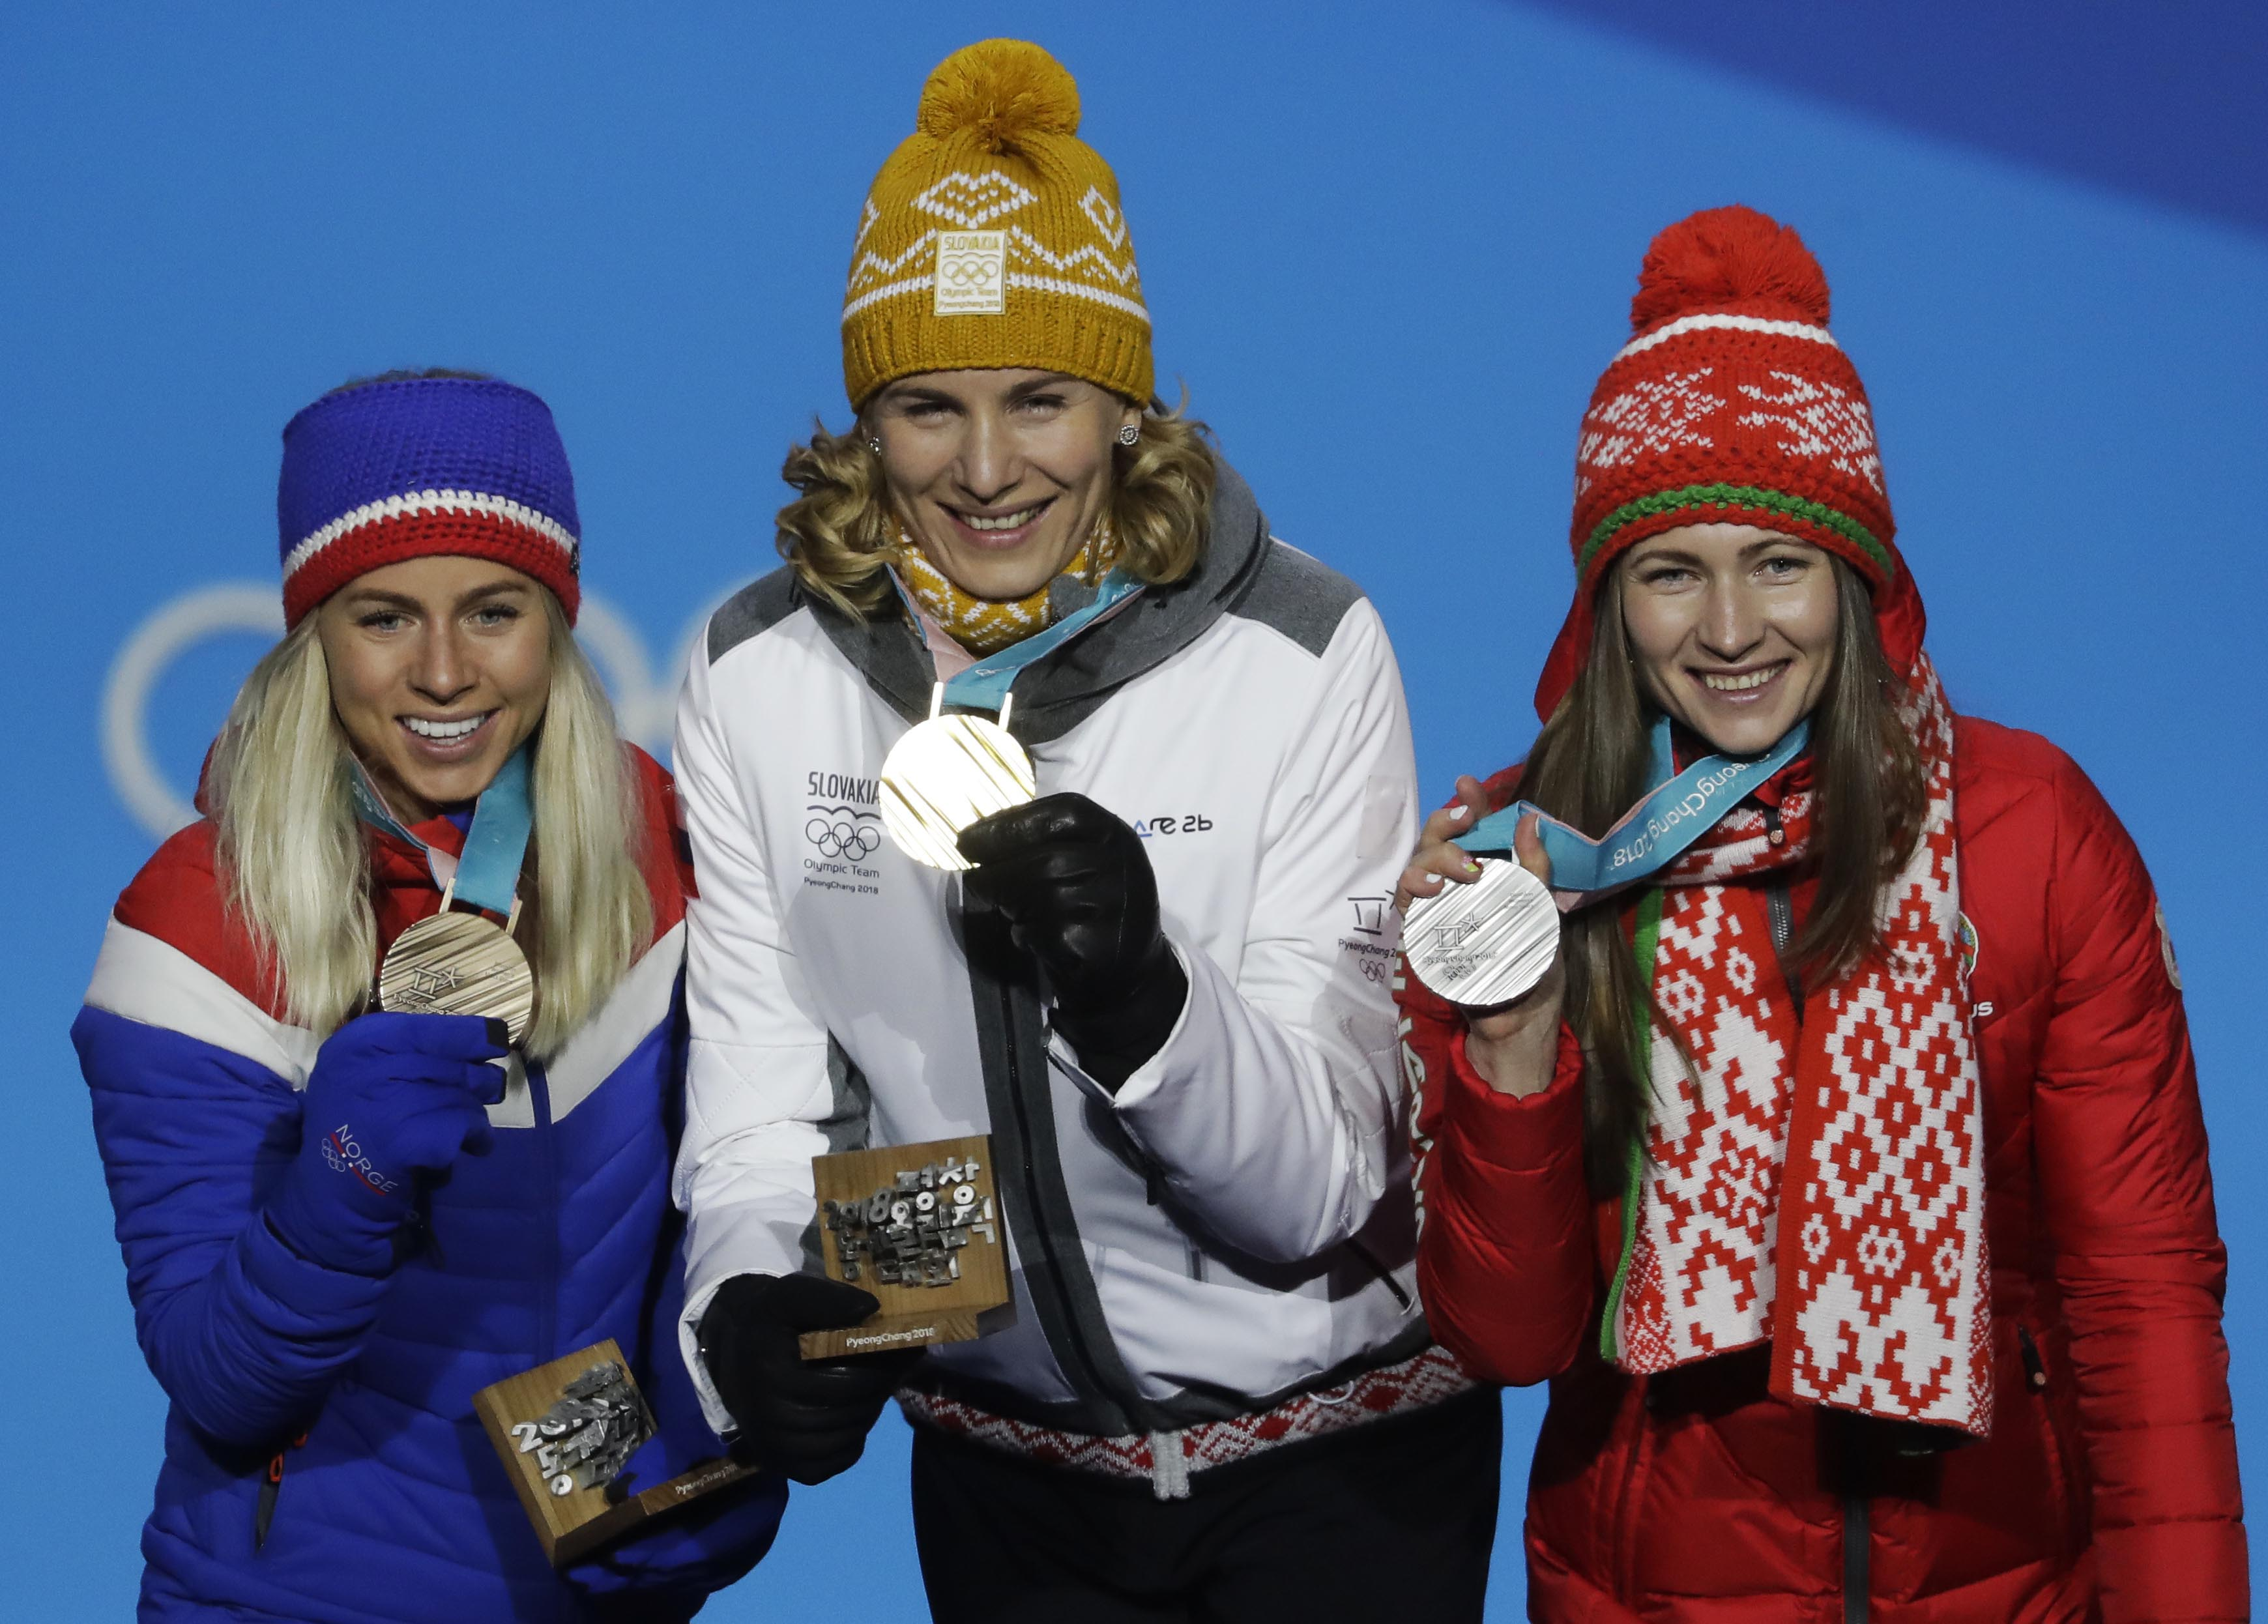 Medalists in the women's 12.5-kilometer mass start biathlon (from right) Belarus' Darya Domracheva (silver), Slovakia's Anastasiya Kuzmina (gold) and Norway's Tiril Eckhoff (bronze) pose during their medals ceremony at the 2018 Winter Olympics in Pyeongchang, South Korea on Sunday.